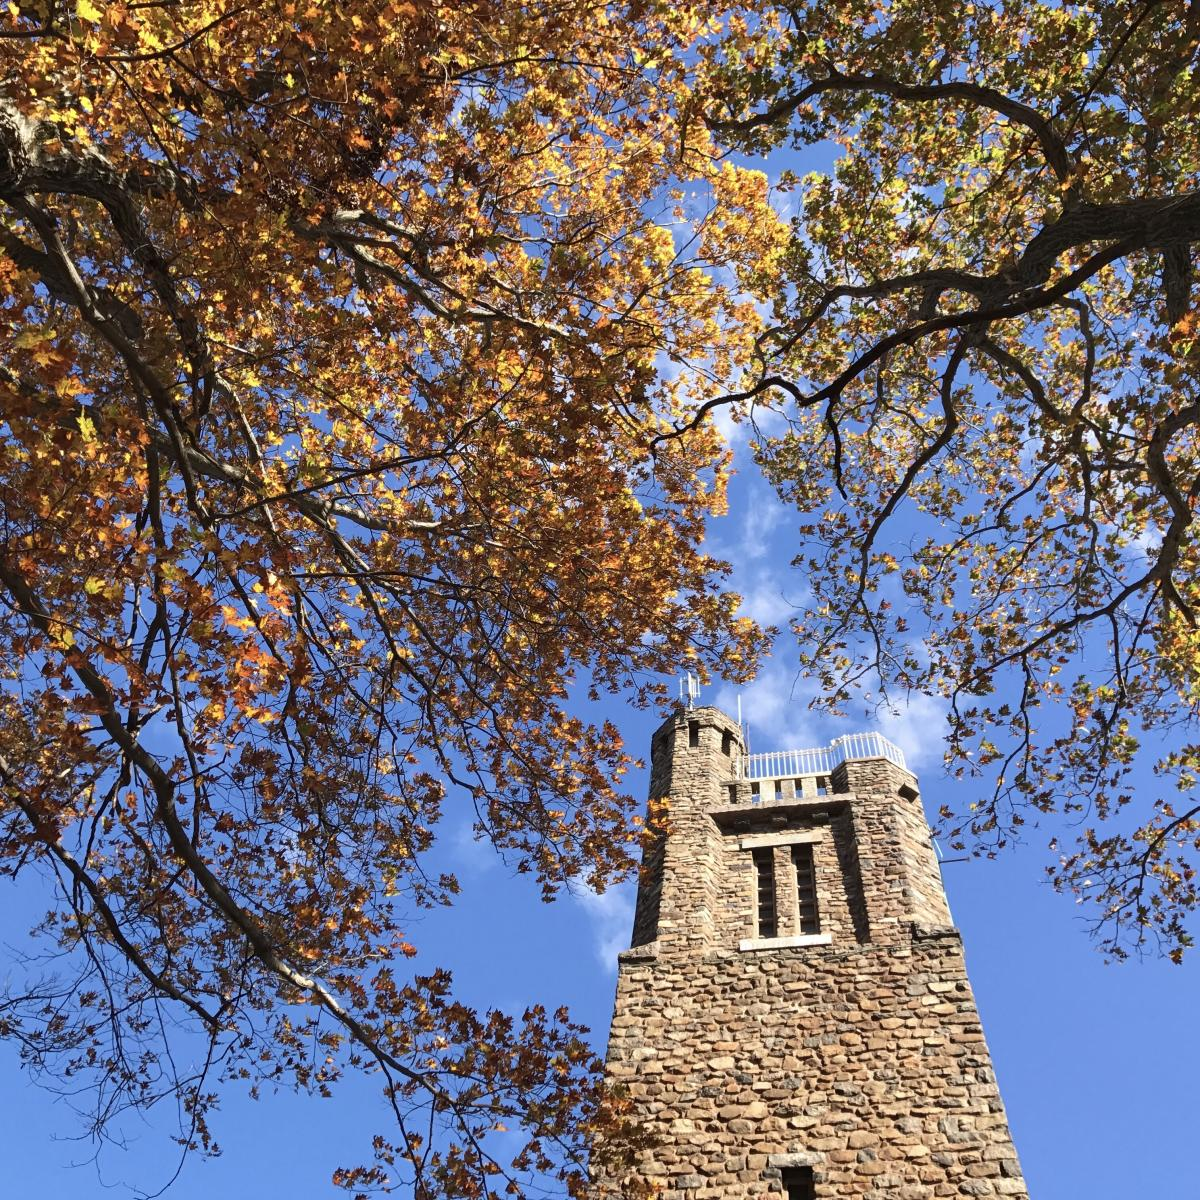 Fall at Bowman's Hill Tower